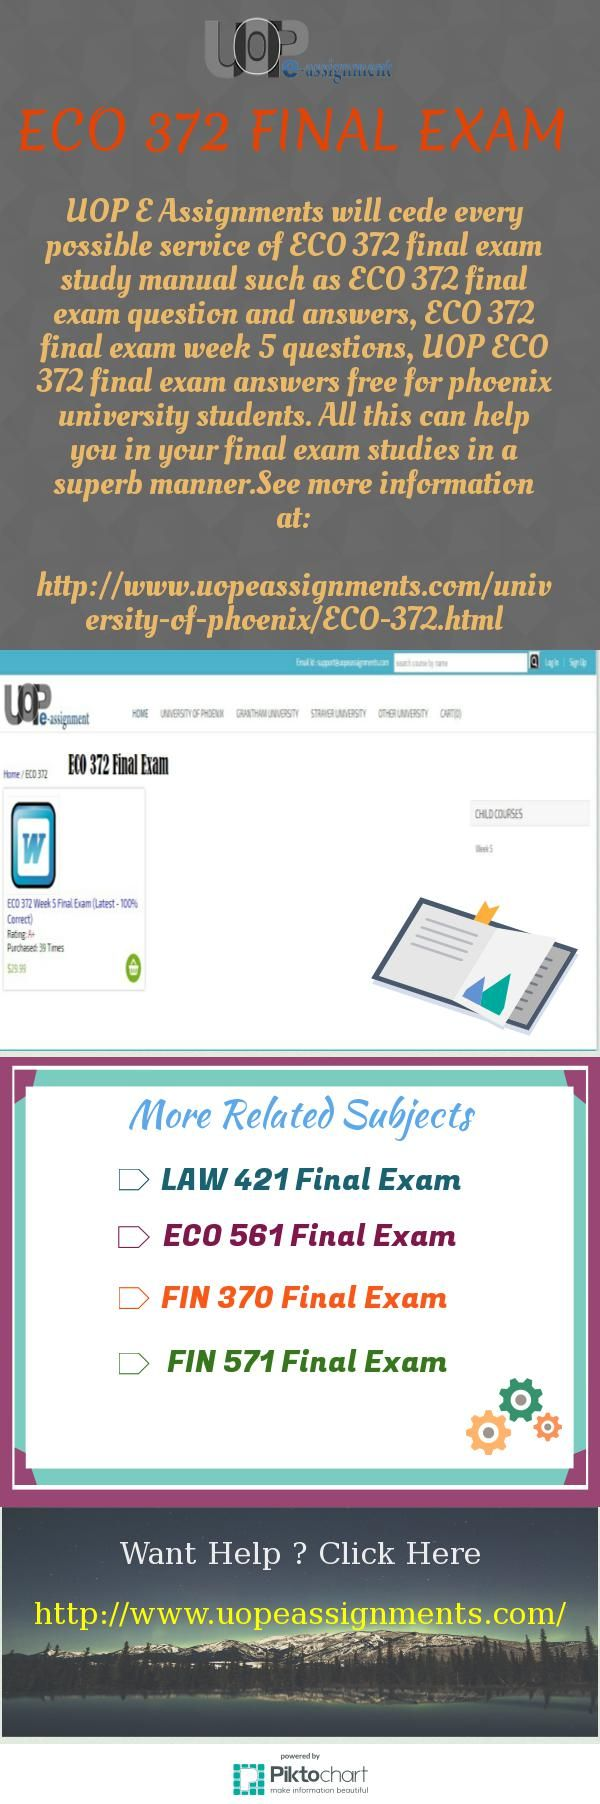 UOP E Assignments will cede every possible service of ECO 372 final exam study manual such as ECO 372 final exam question and answers, ECO 372 final exam week 5 questions, UOP ECO 372 final exam answers free for phoenix university students. All this can help you in your final exam studies in a superb manner.See more information at: http://www.uopeassignments.com/university-of-phoenix/ECO-372.html